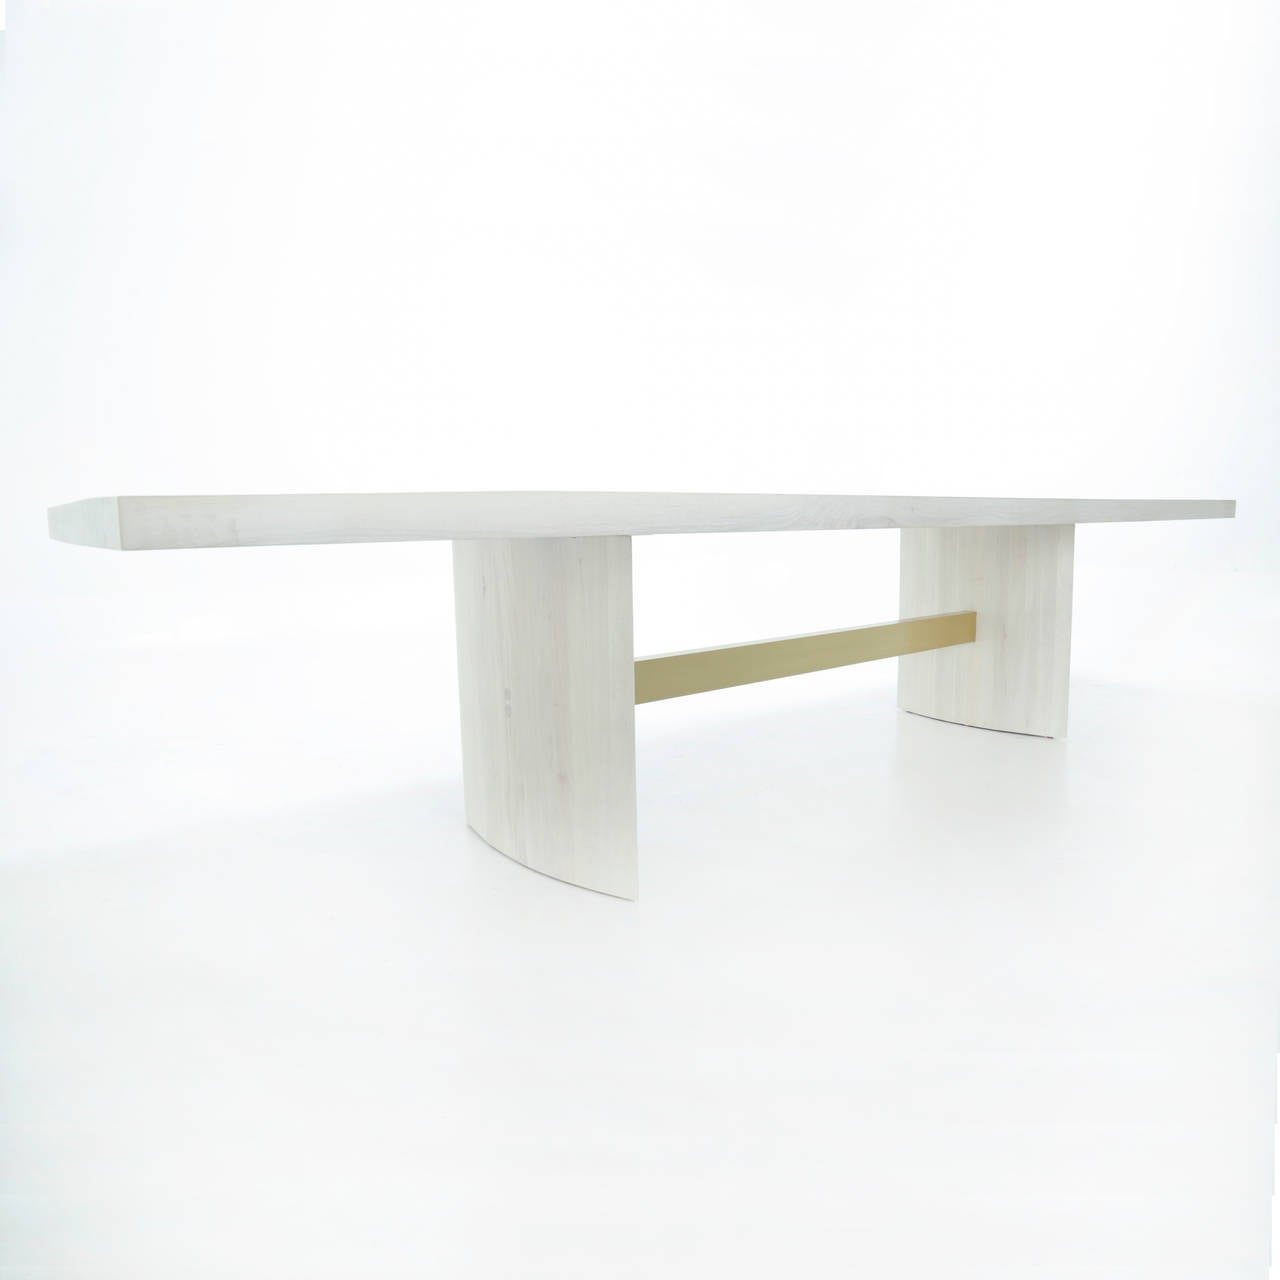 Jantar Alloy Dining Table by Thomas Hayes Studio 3